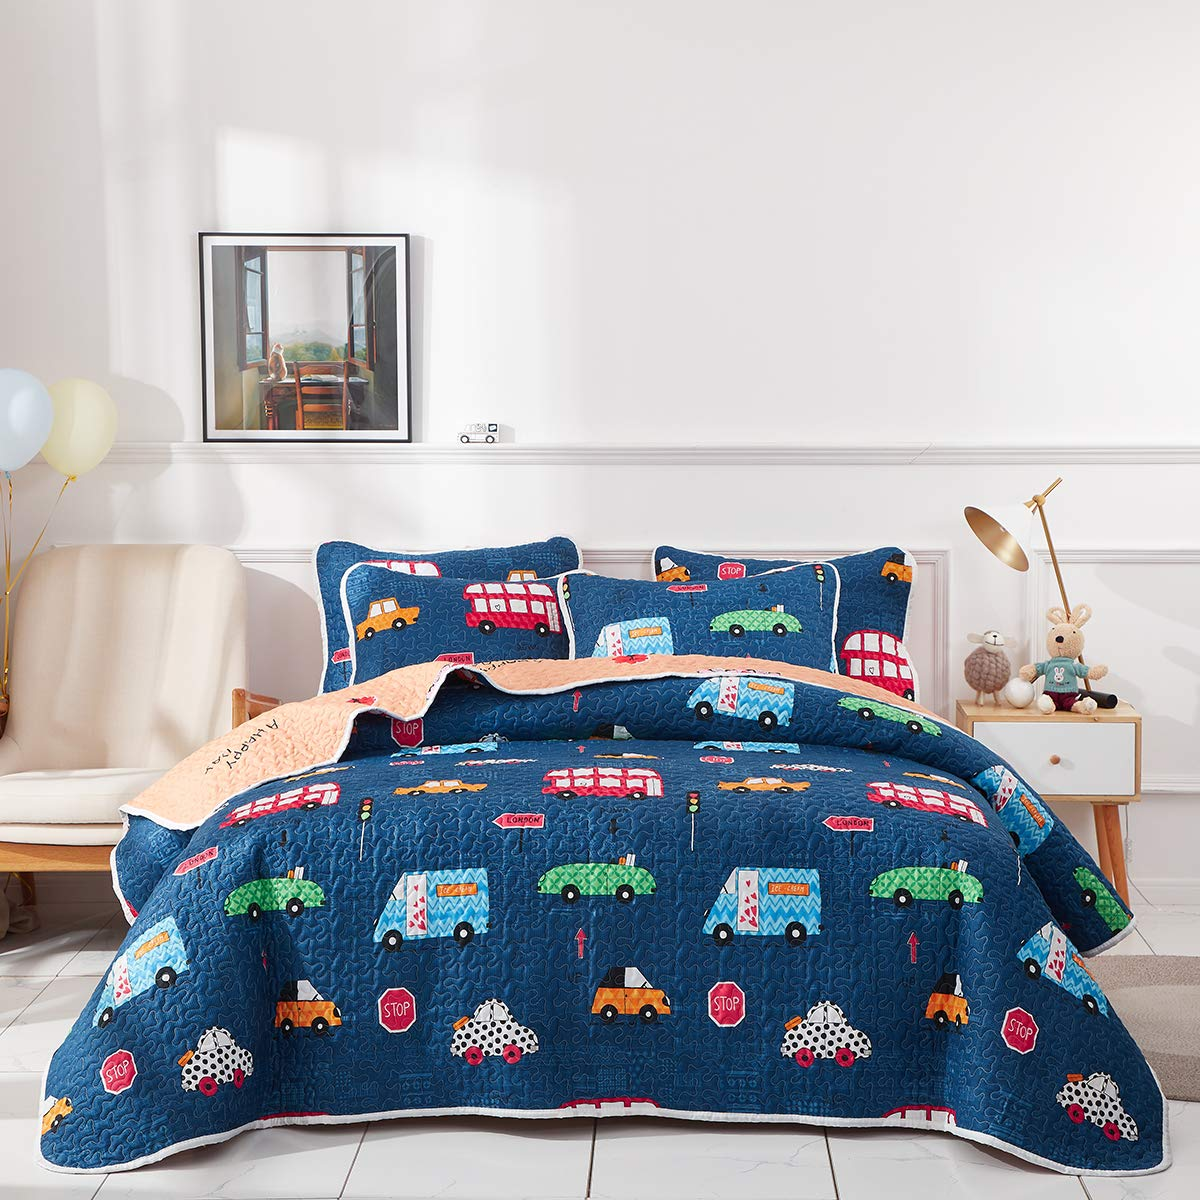 Uozzi Bedding 3 Piece Reversible Navy Quilt Set Queen Size 92x90 with Cars Bus Traffic Style Soft Microfiber Lightweight Coverlet Bedspread for Kids(1 Quilt + 2 Shams)